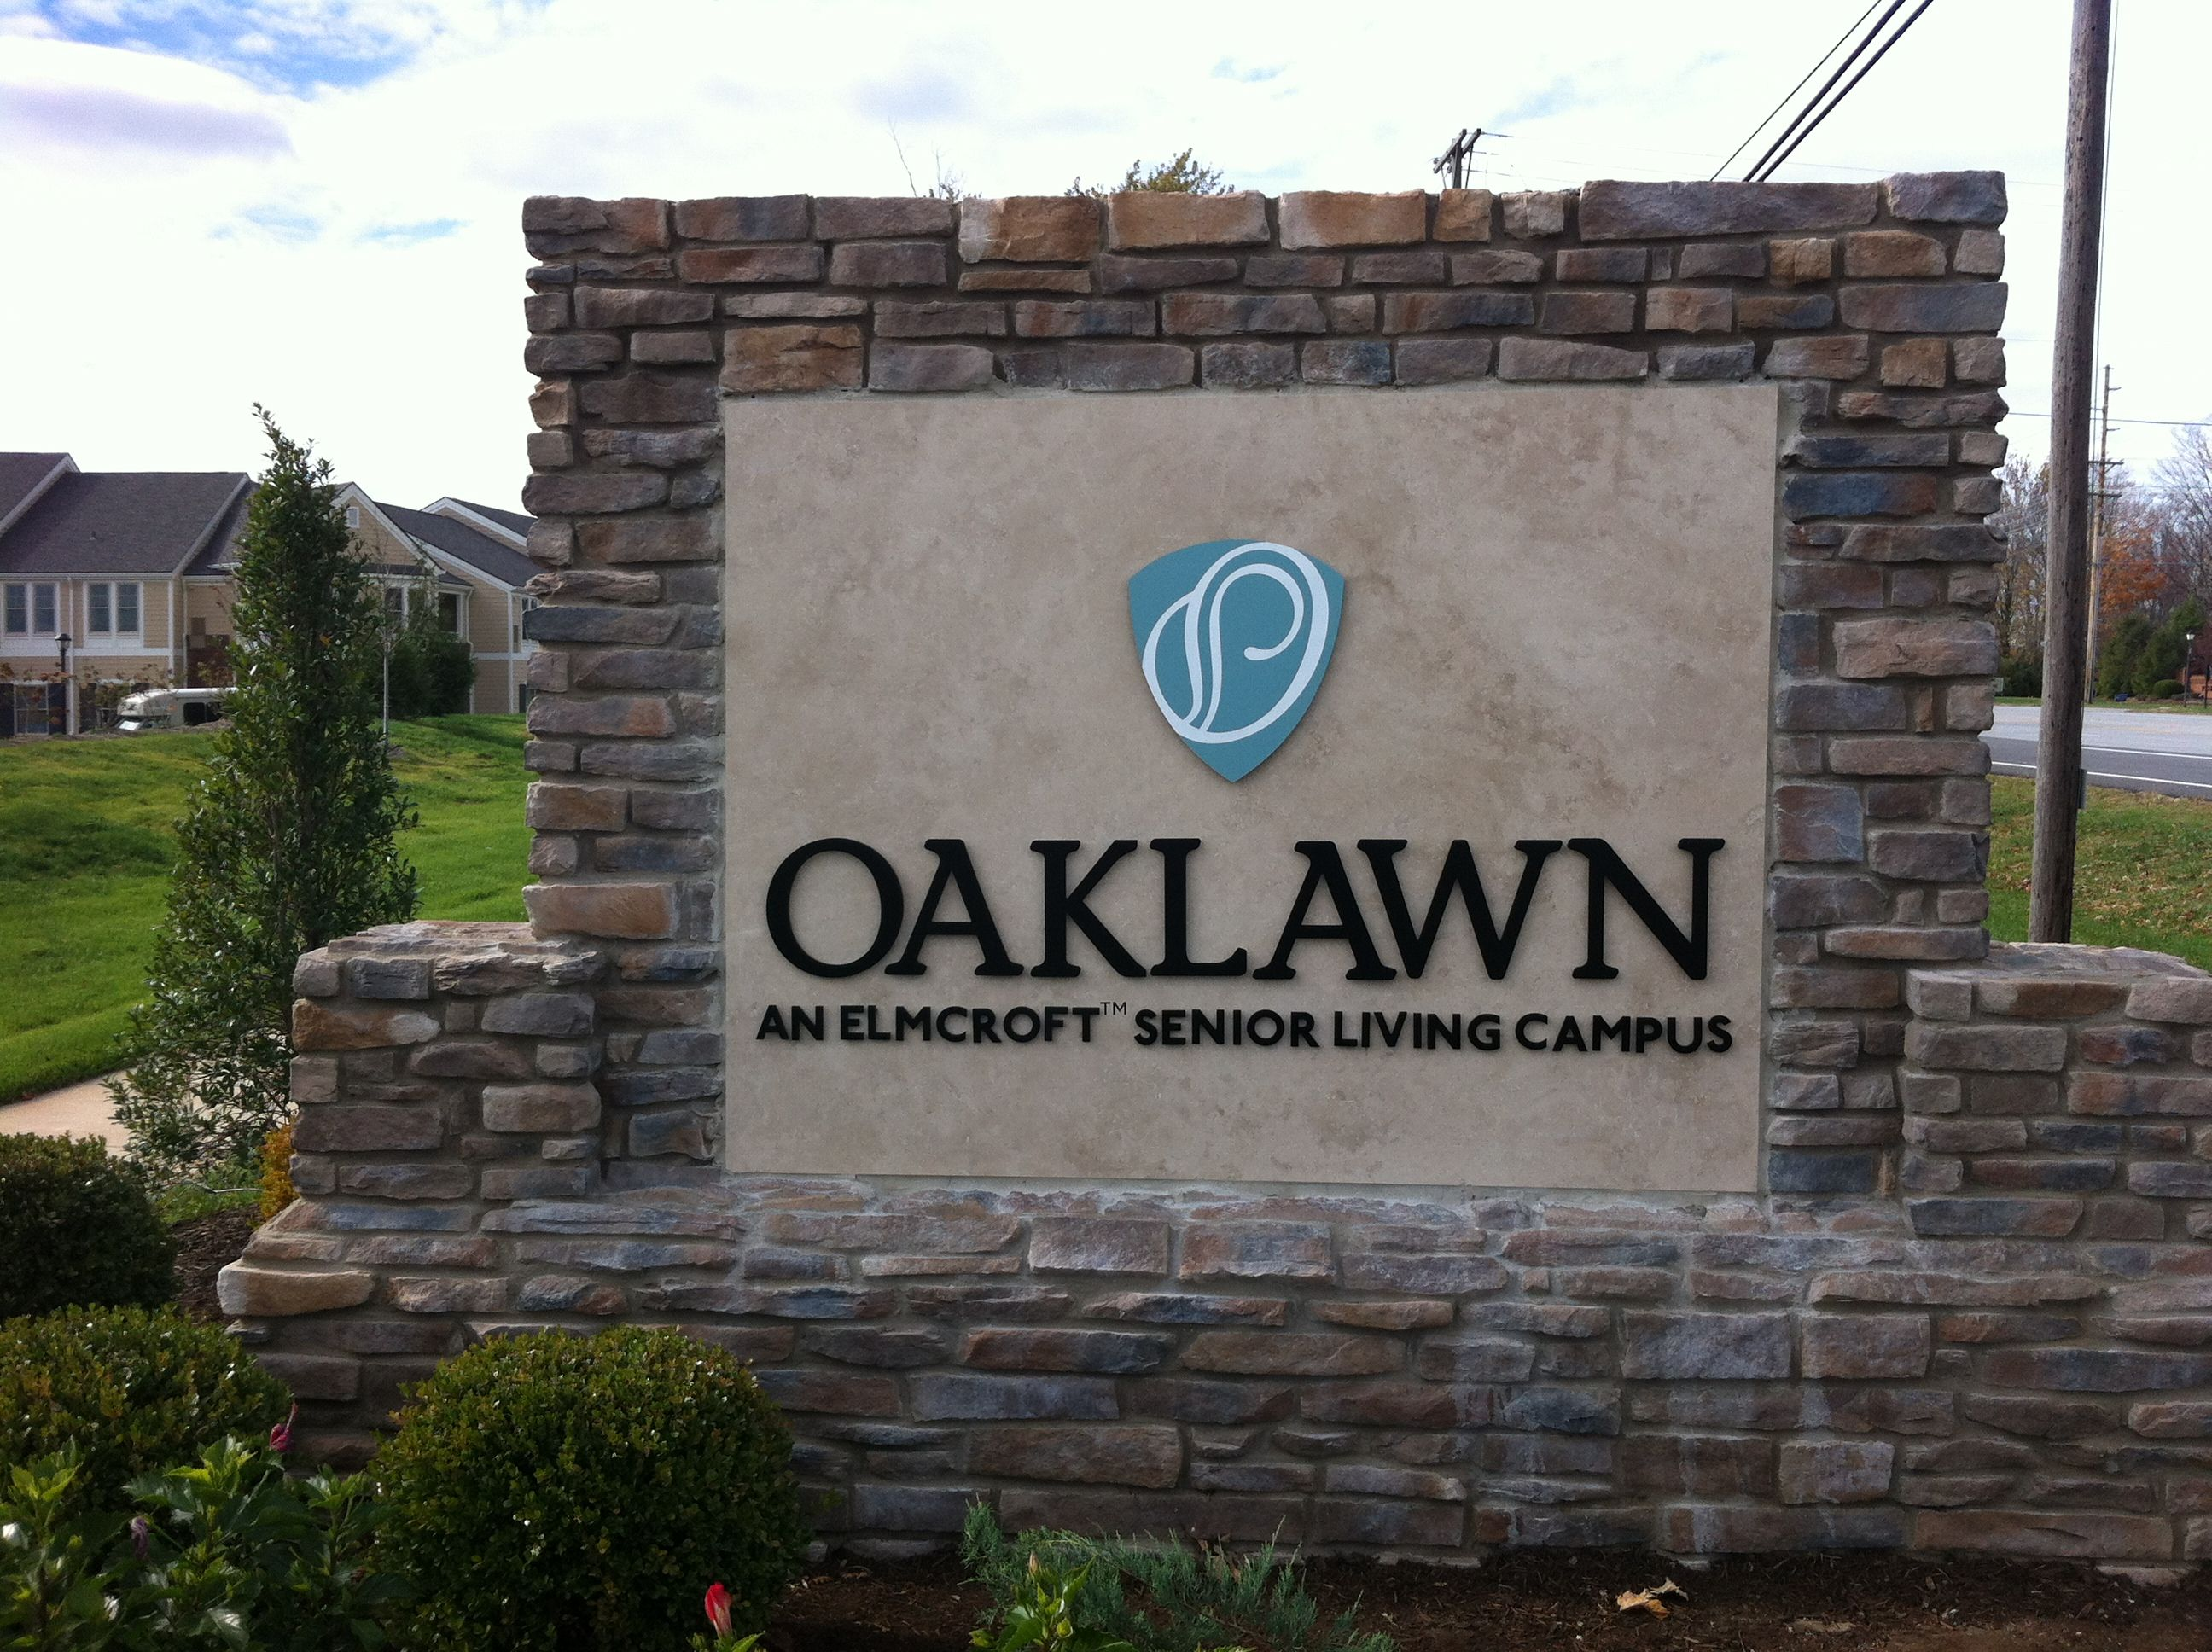 oaklawn an elmcroft senior living campus located in louisville ky